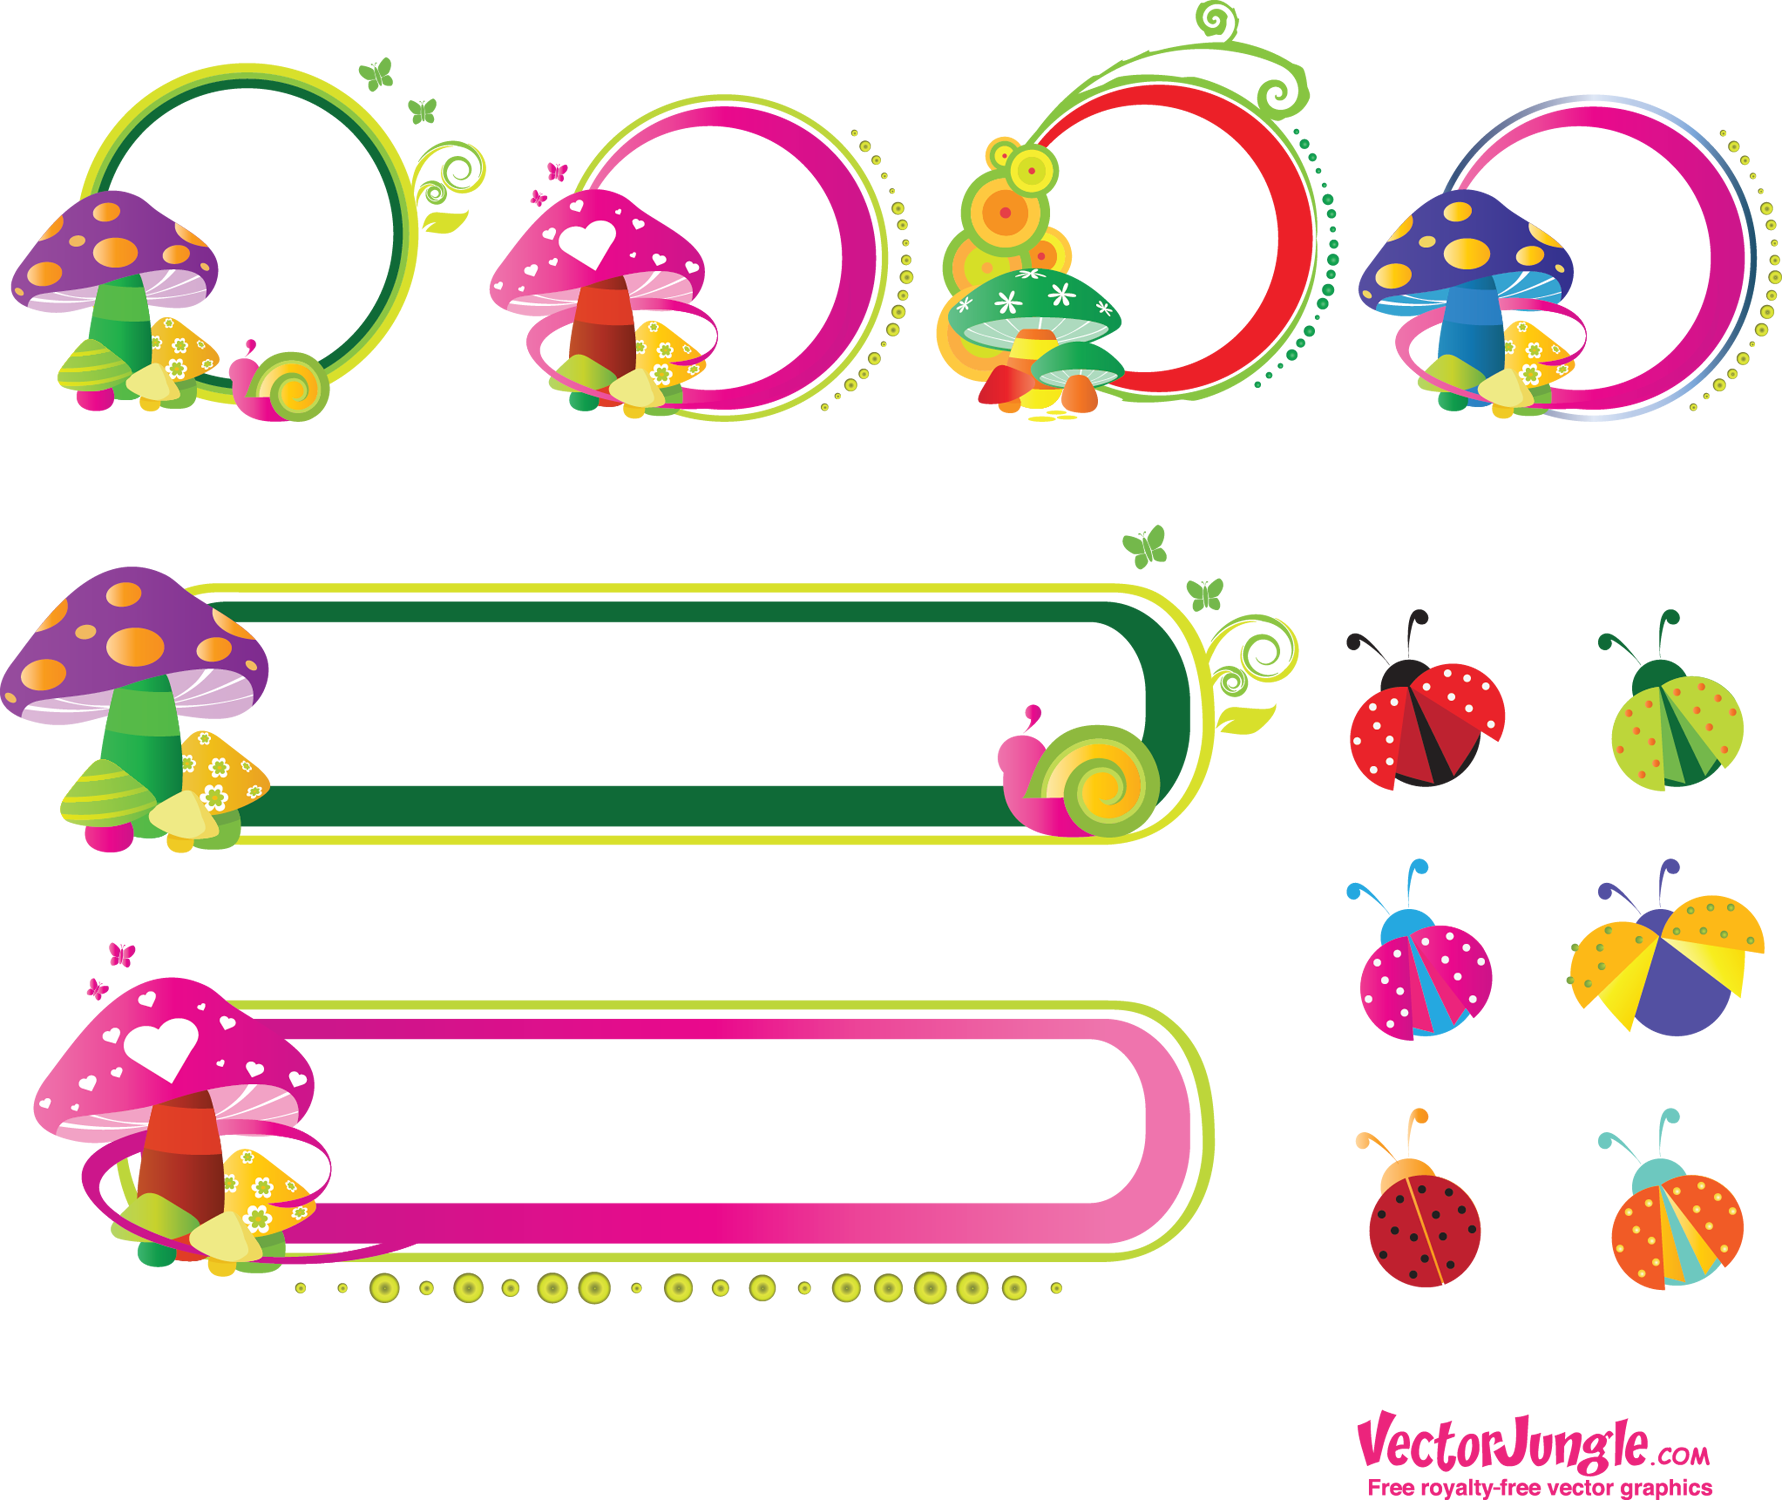 Mushrooms vector stylized. Rating votes cast groovy